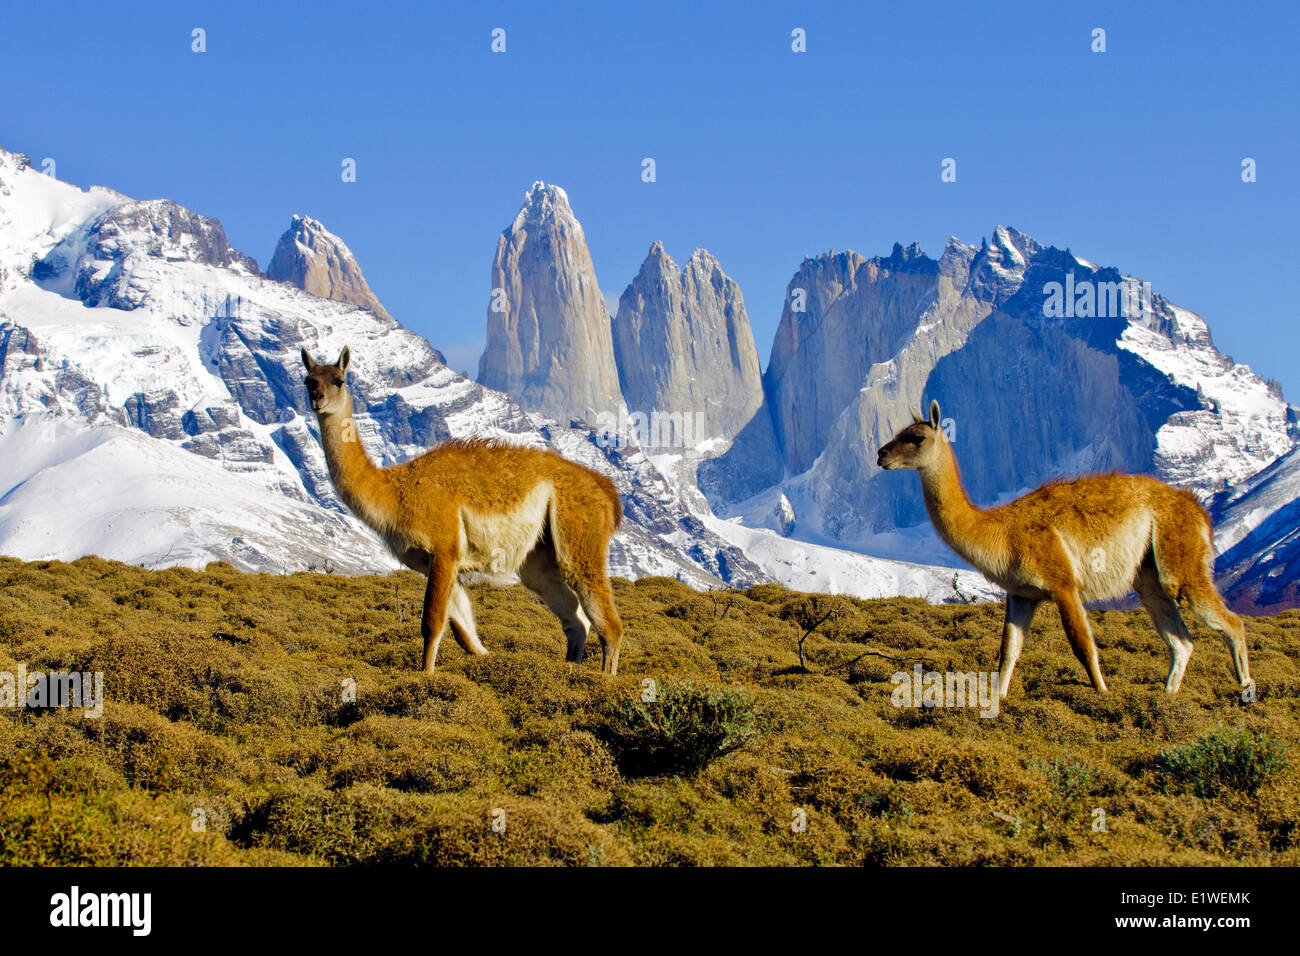 Adult guanacos (Lama guanicoe), Torres Del Paine National Park, Patagonia, southern Chile, South America - Stock Image